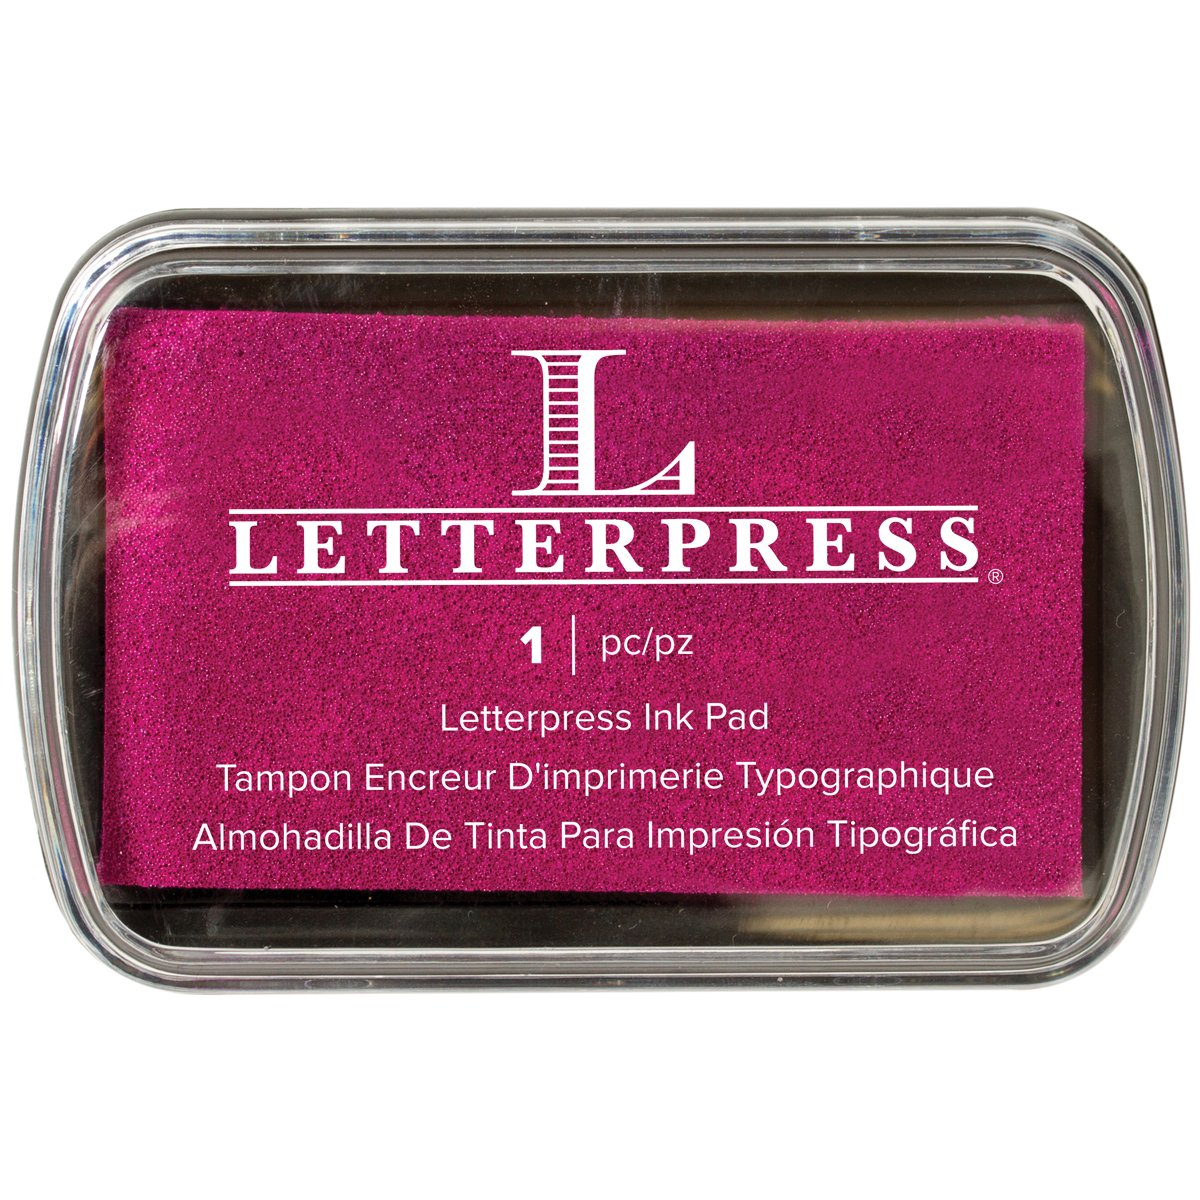 We R Memory Keepers Letterpress tampone di Inchiostro Fucsia 512472